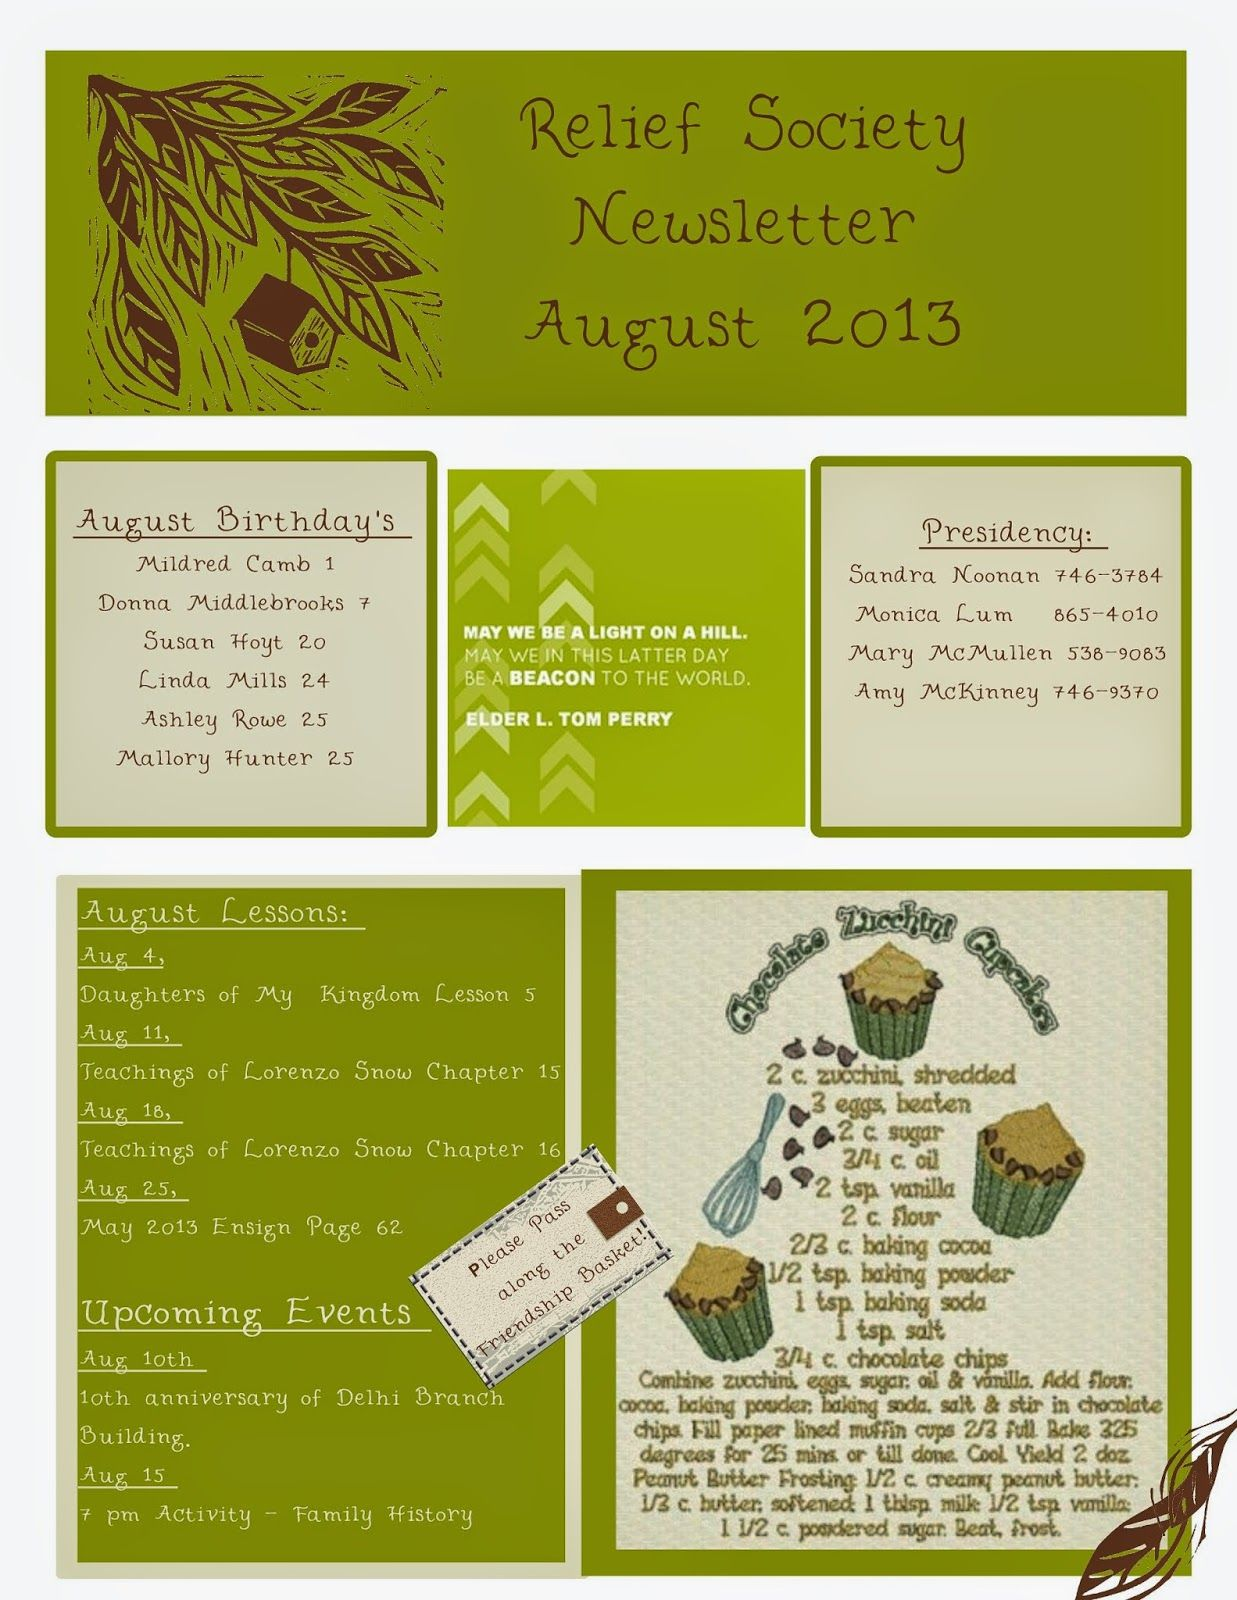 Blank Newsletters (With images) Relief society, Relief